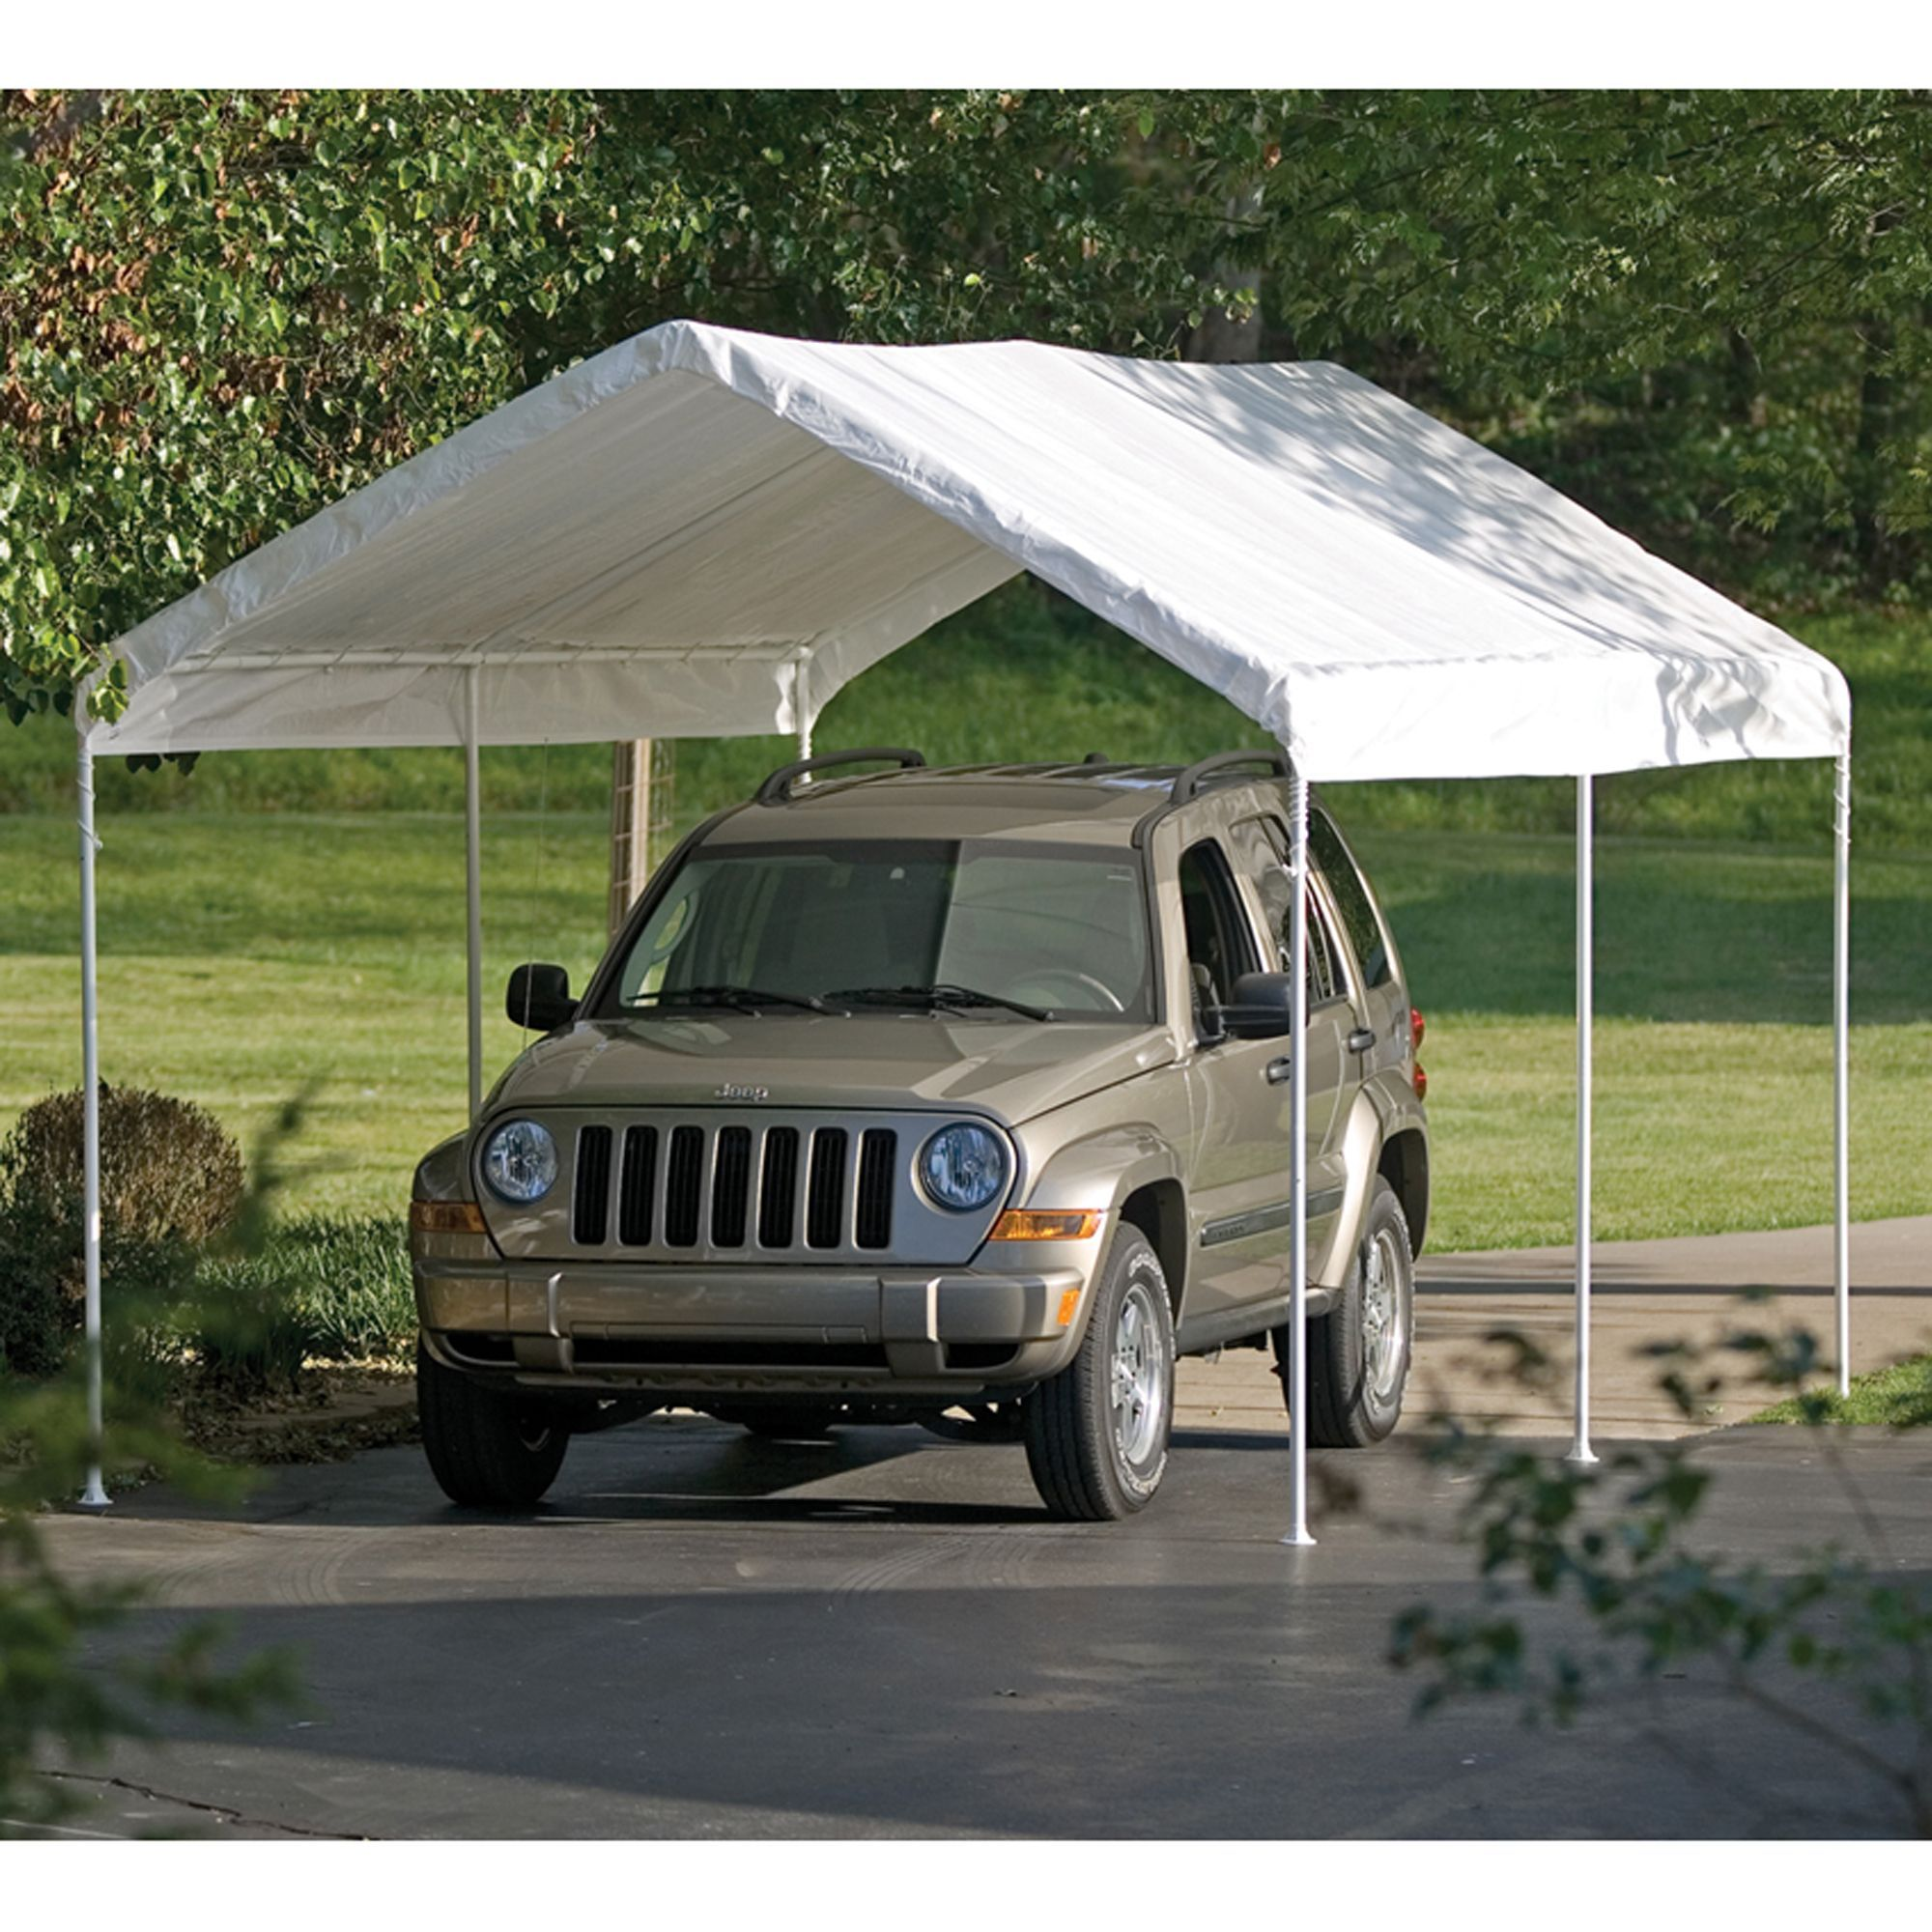 Car Canopy Protect Your Automobile Yonohomedesign Com In 2020 Car Canopy Car Canopy Tent Portable Carport